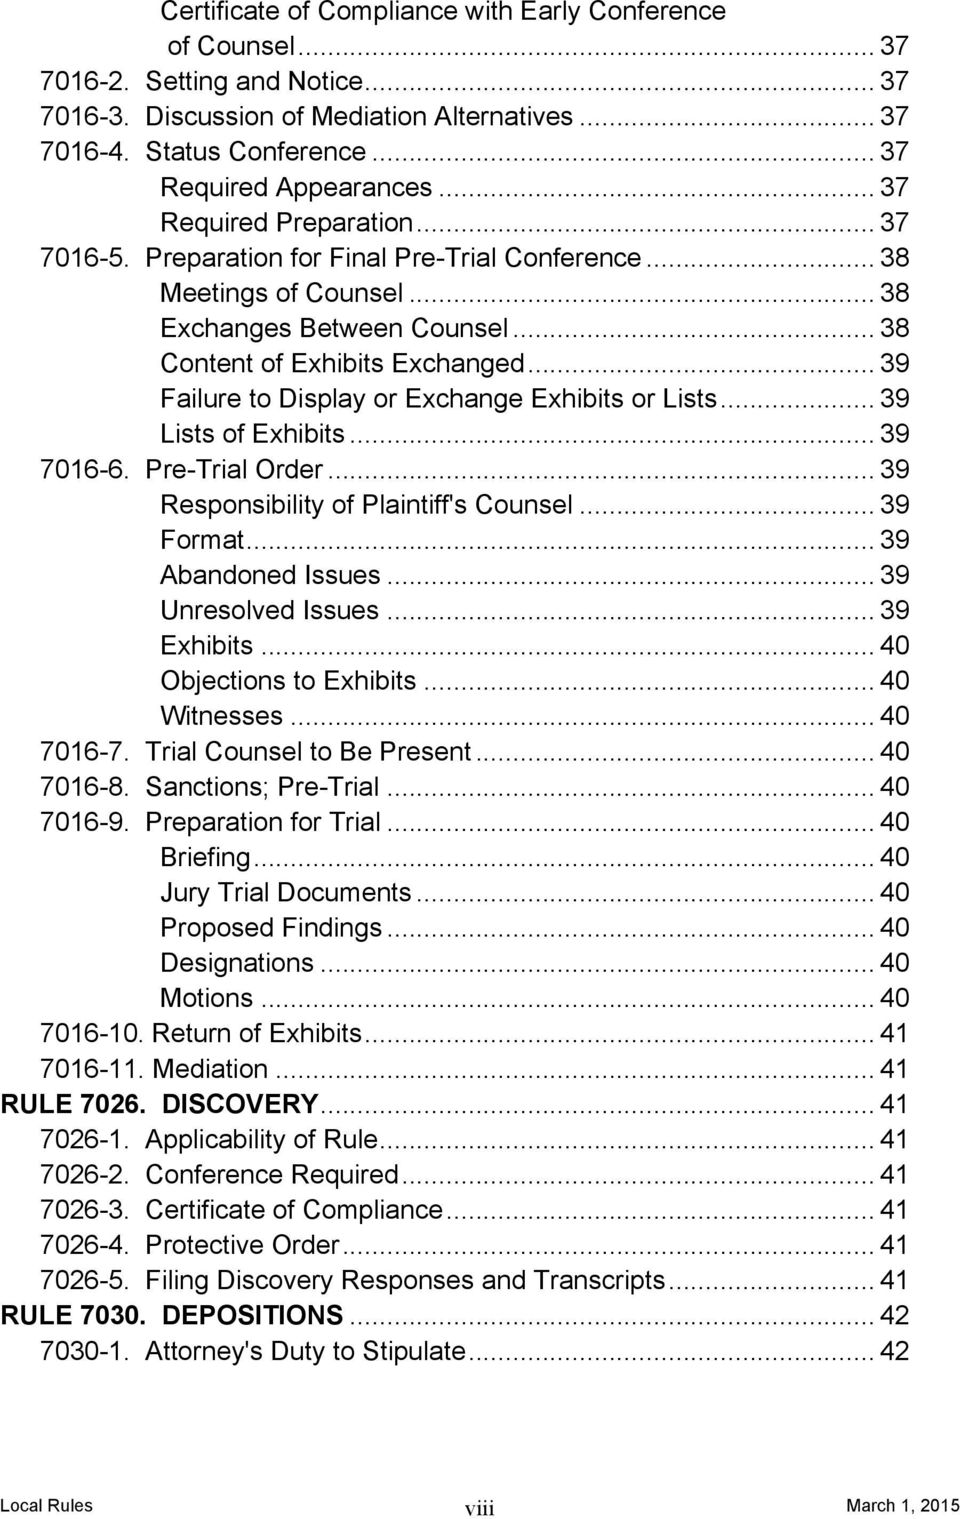 .. 39 Failure to Display or Exchange Exhibits or Lists... 39 Lists of Exhibits... 39 7016-6. Pre-Trial Order... 39 Responsibility of Plaintiff's Counsel... 39 Format... 39 Abandoned Issues.